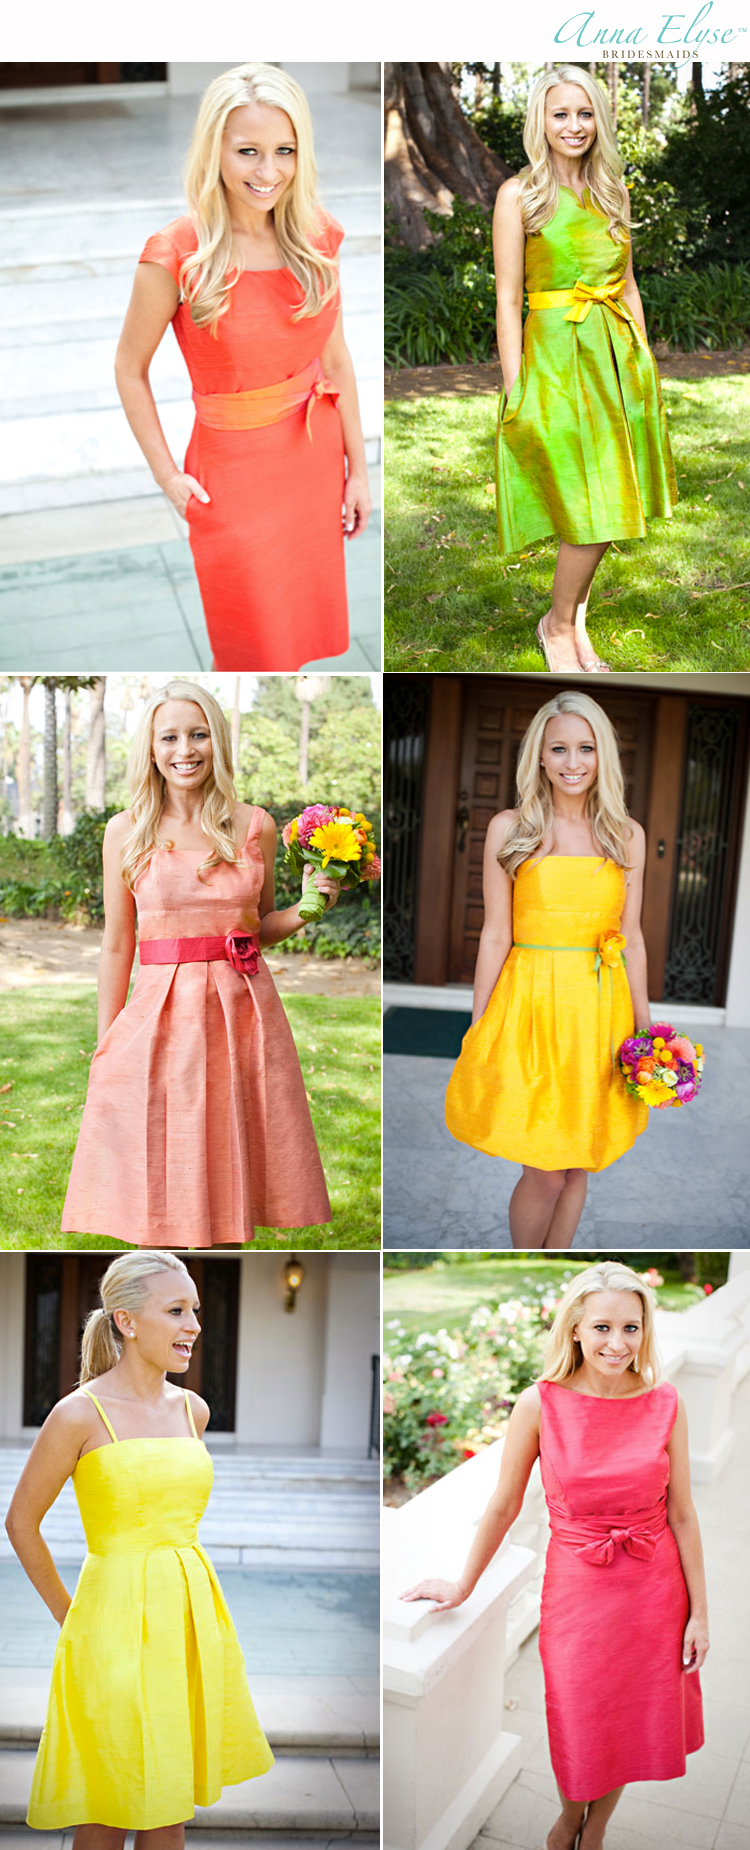 Anna Elyse bridesmaid dresses Patsy's Bridal Boutique in Dallas